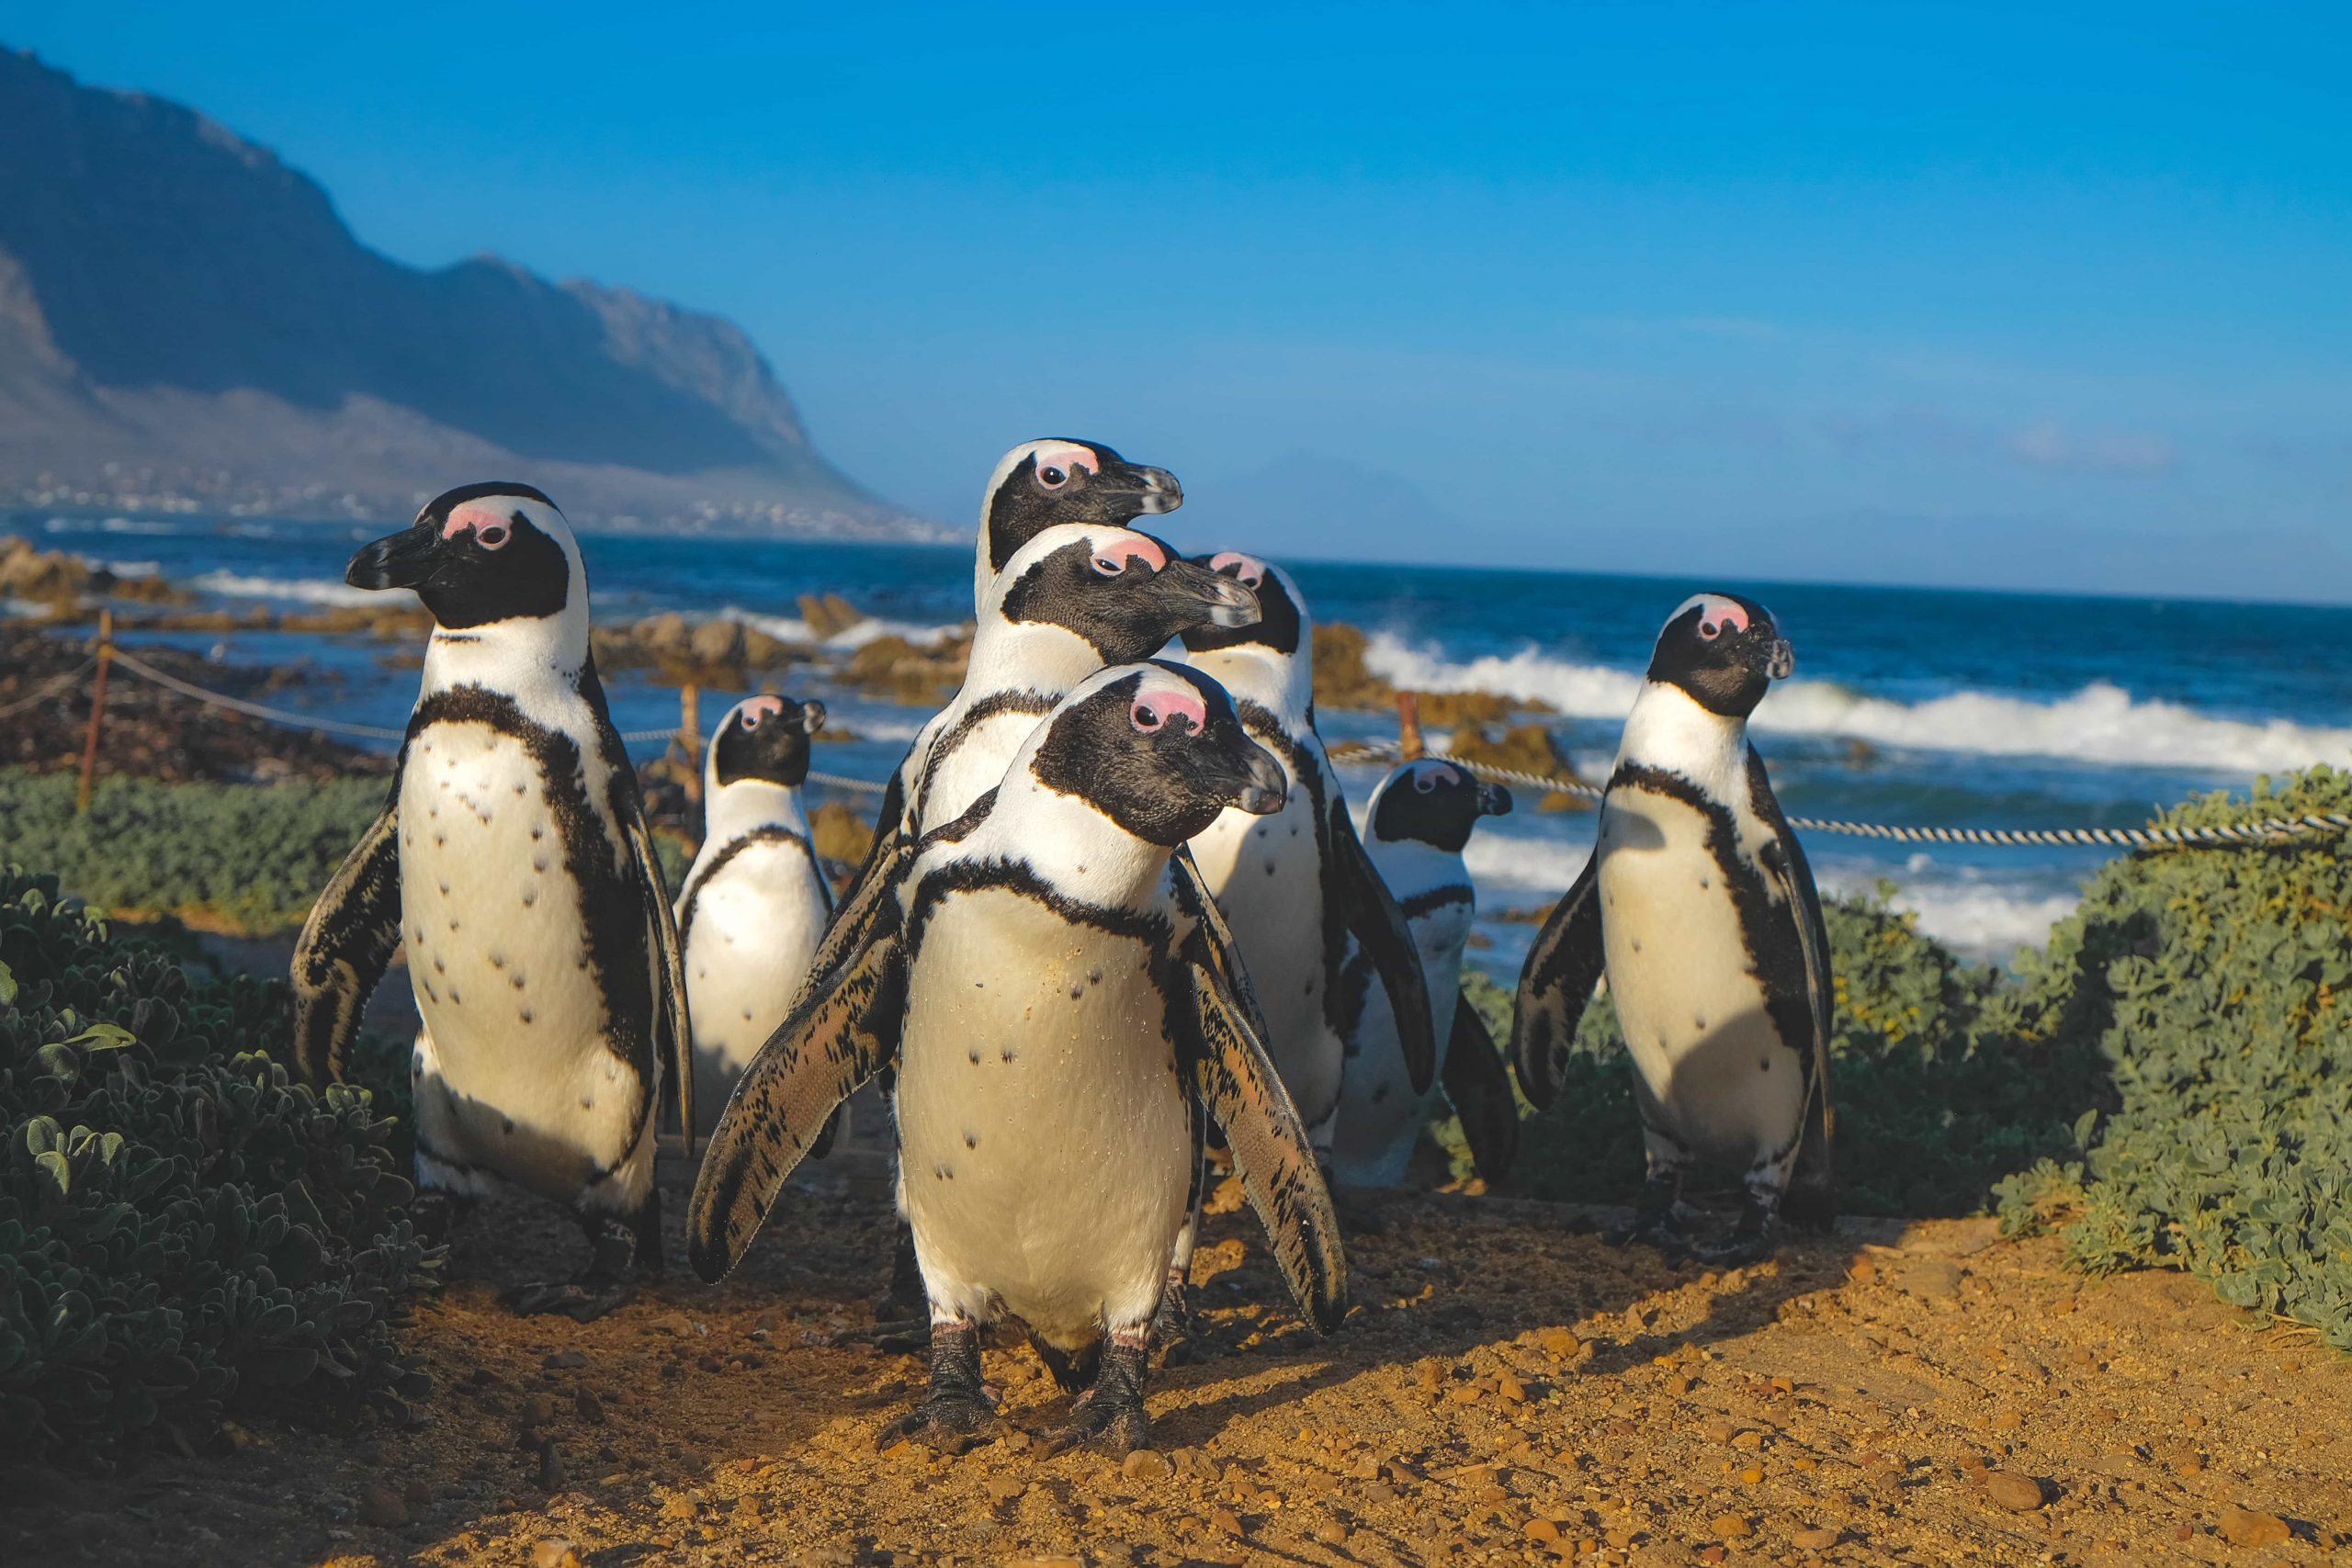 How to find the Penguin Beach in Cape Town